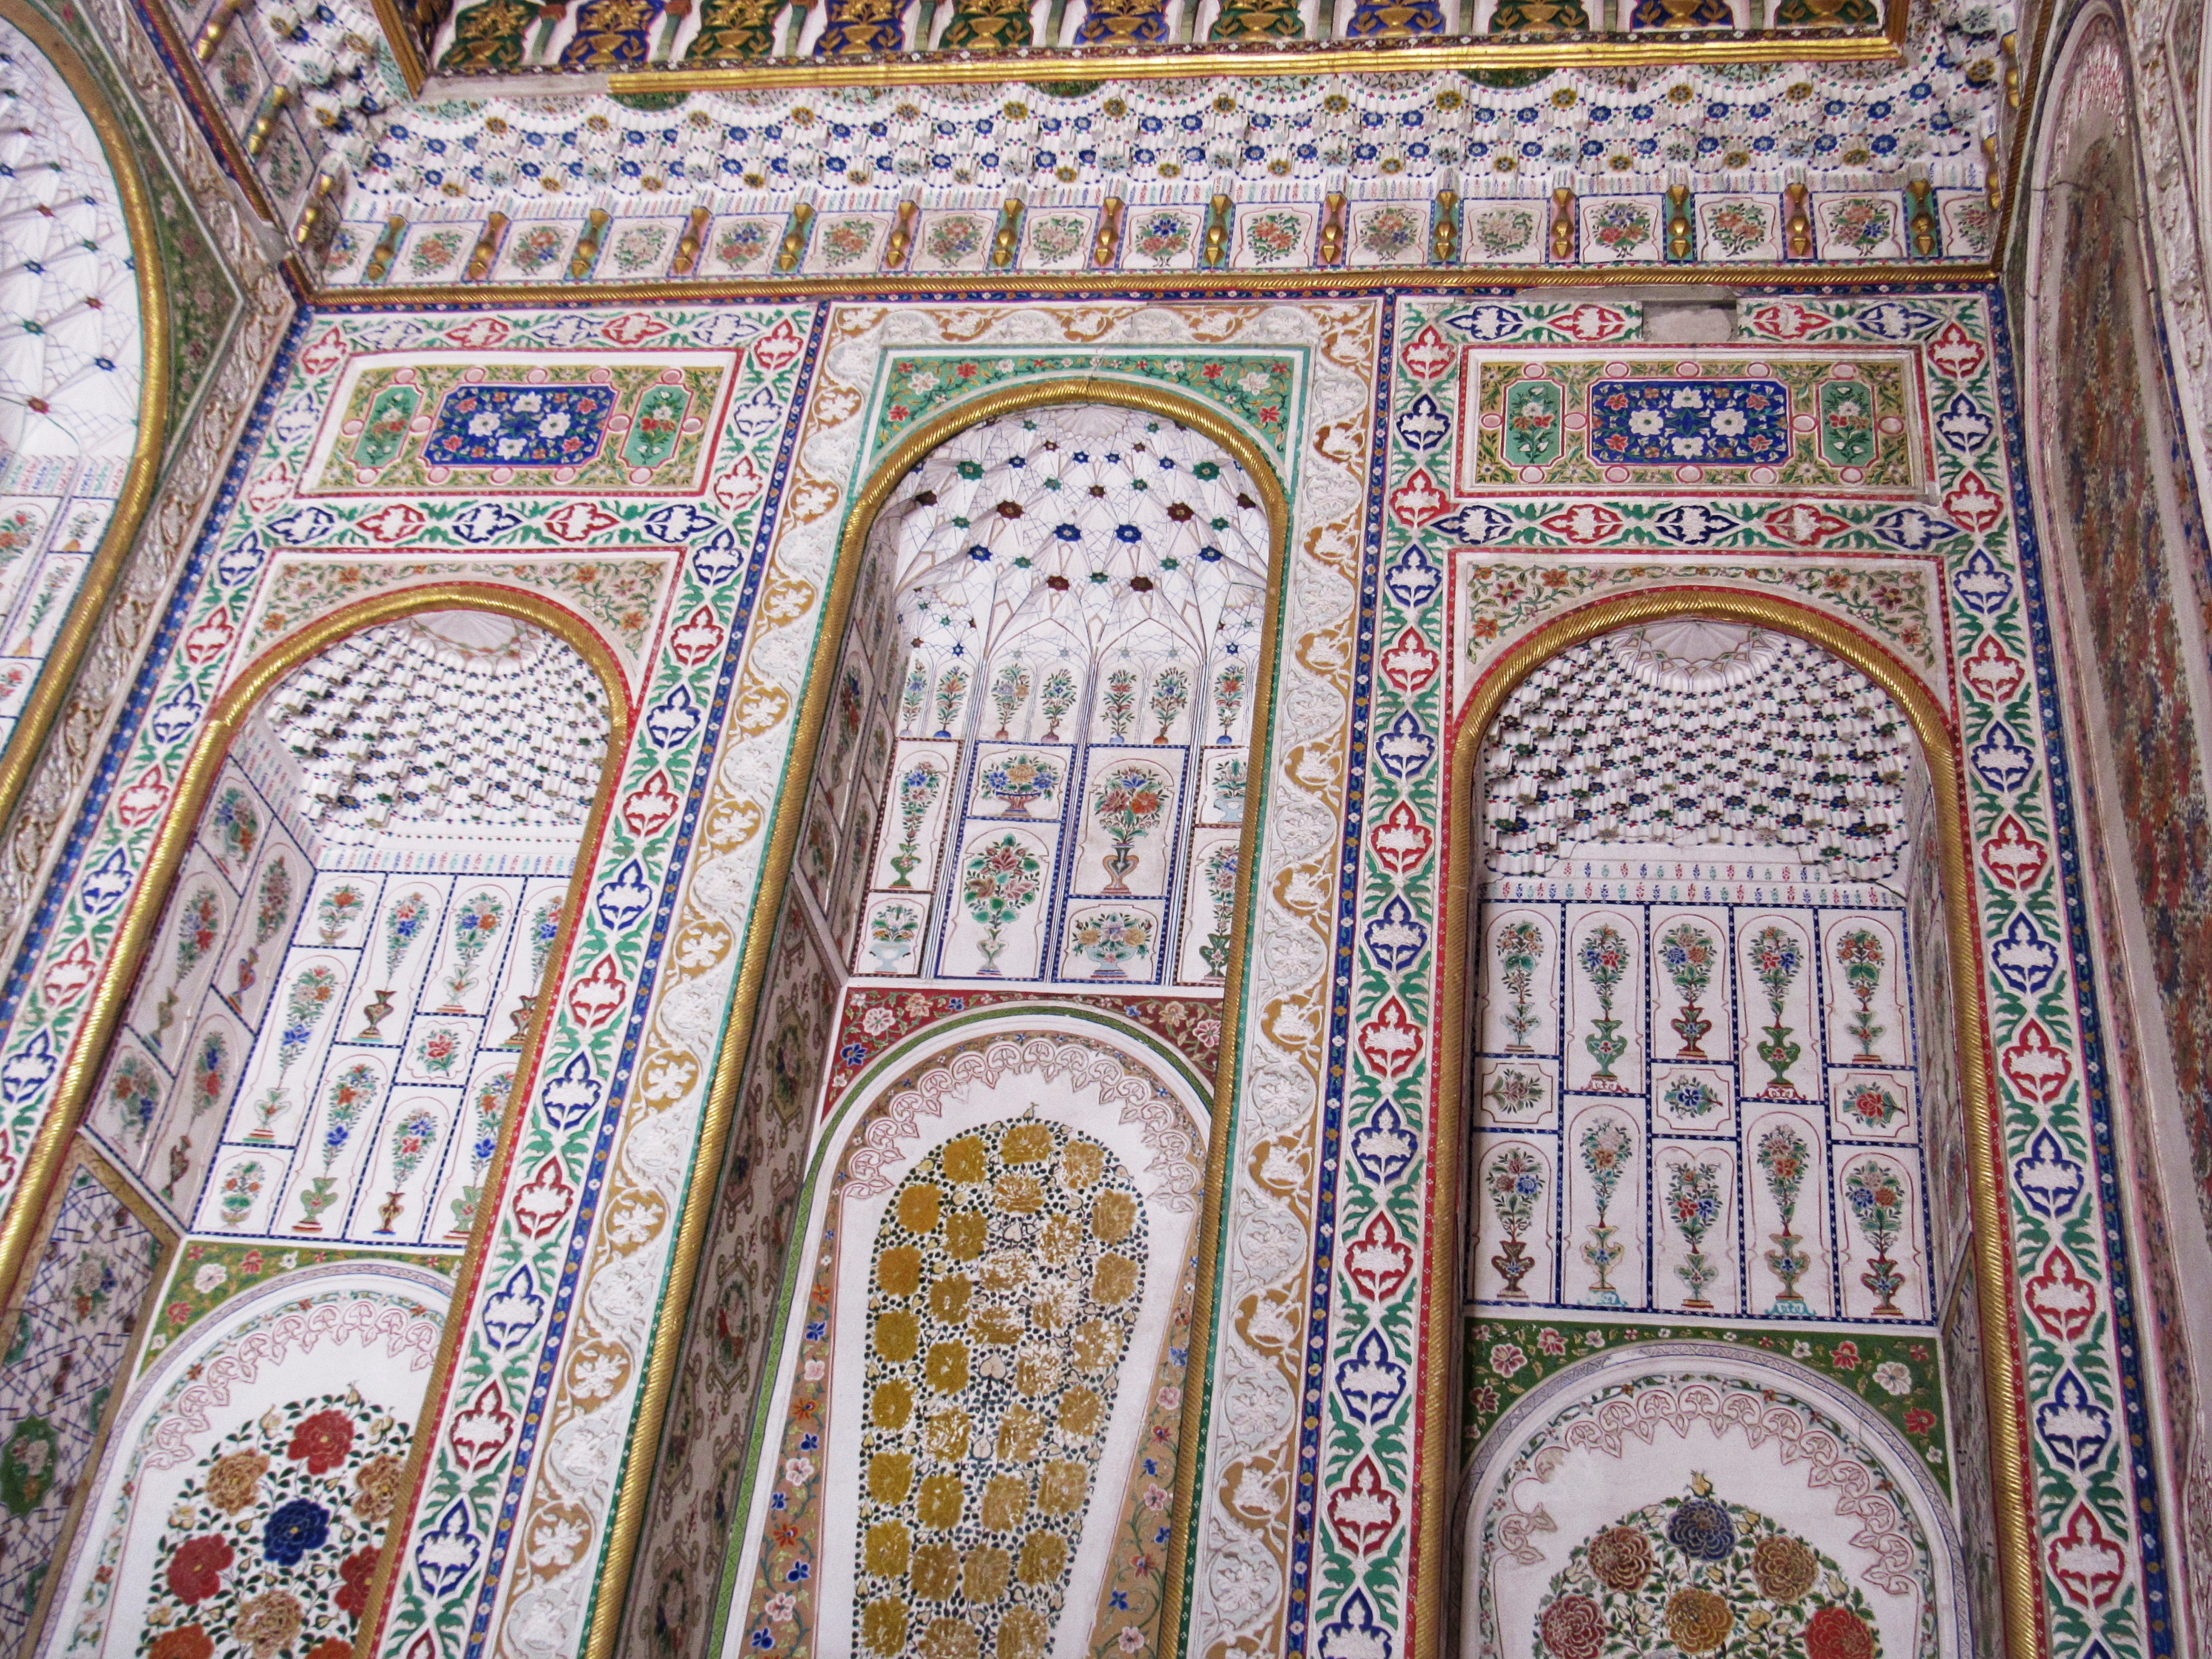 Elaborately patterned summer walls in the Sitorai Mokhi-Khosa